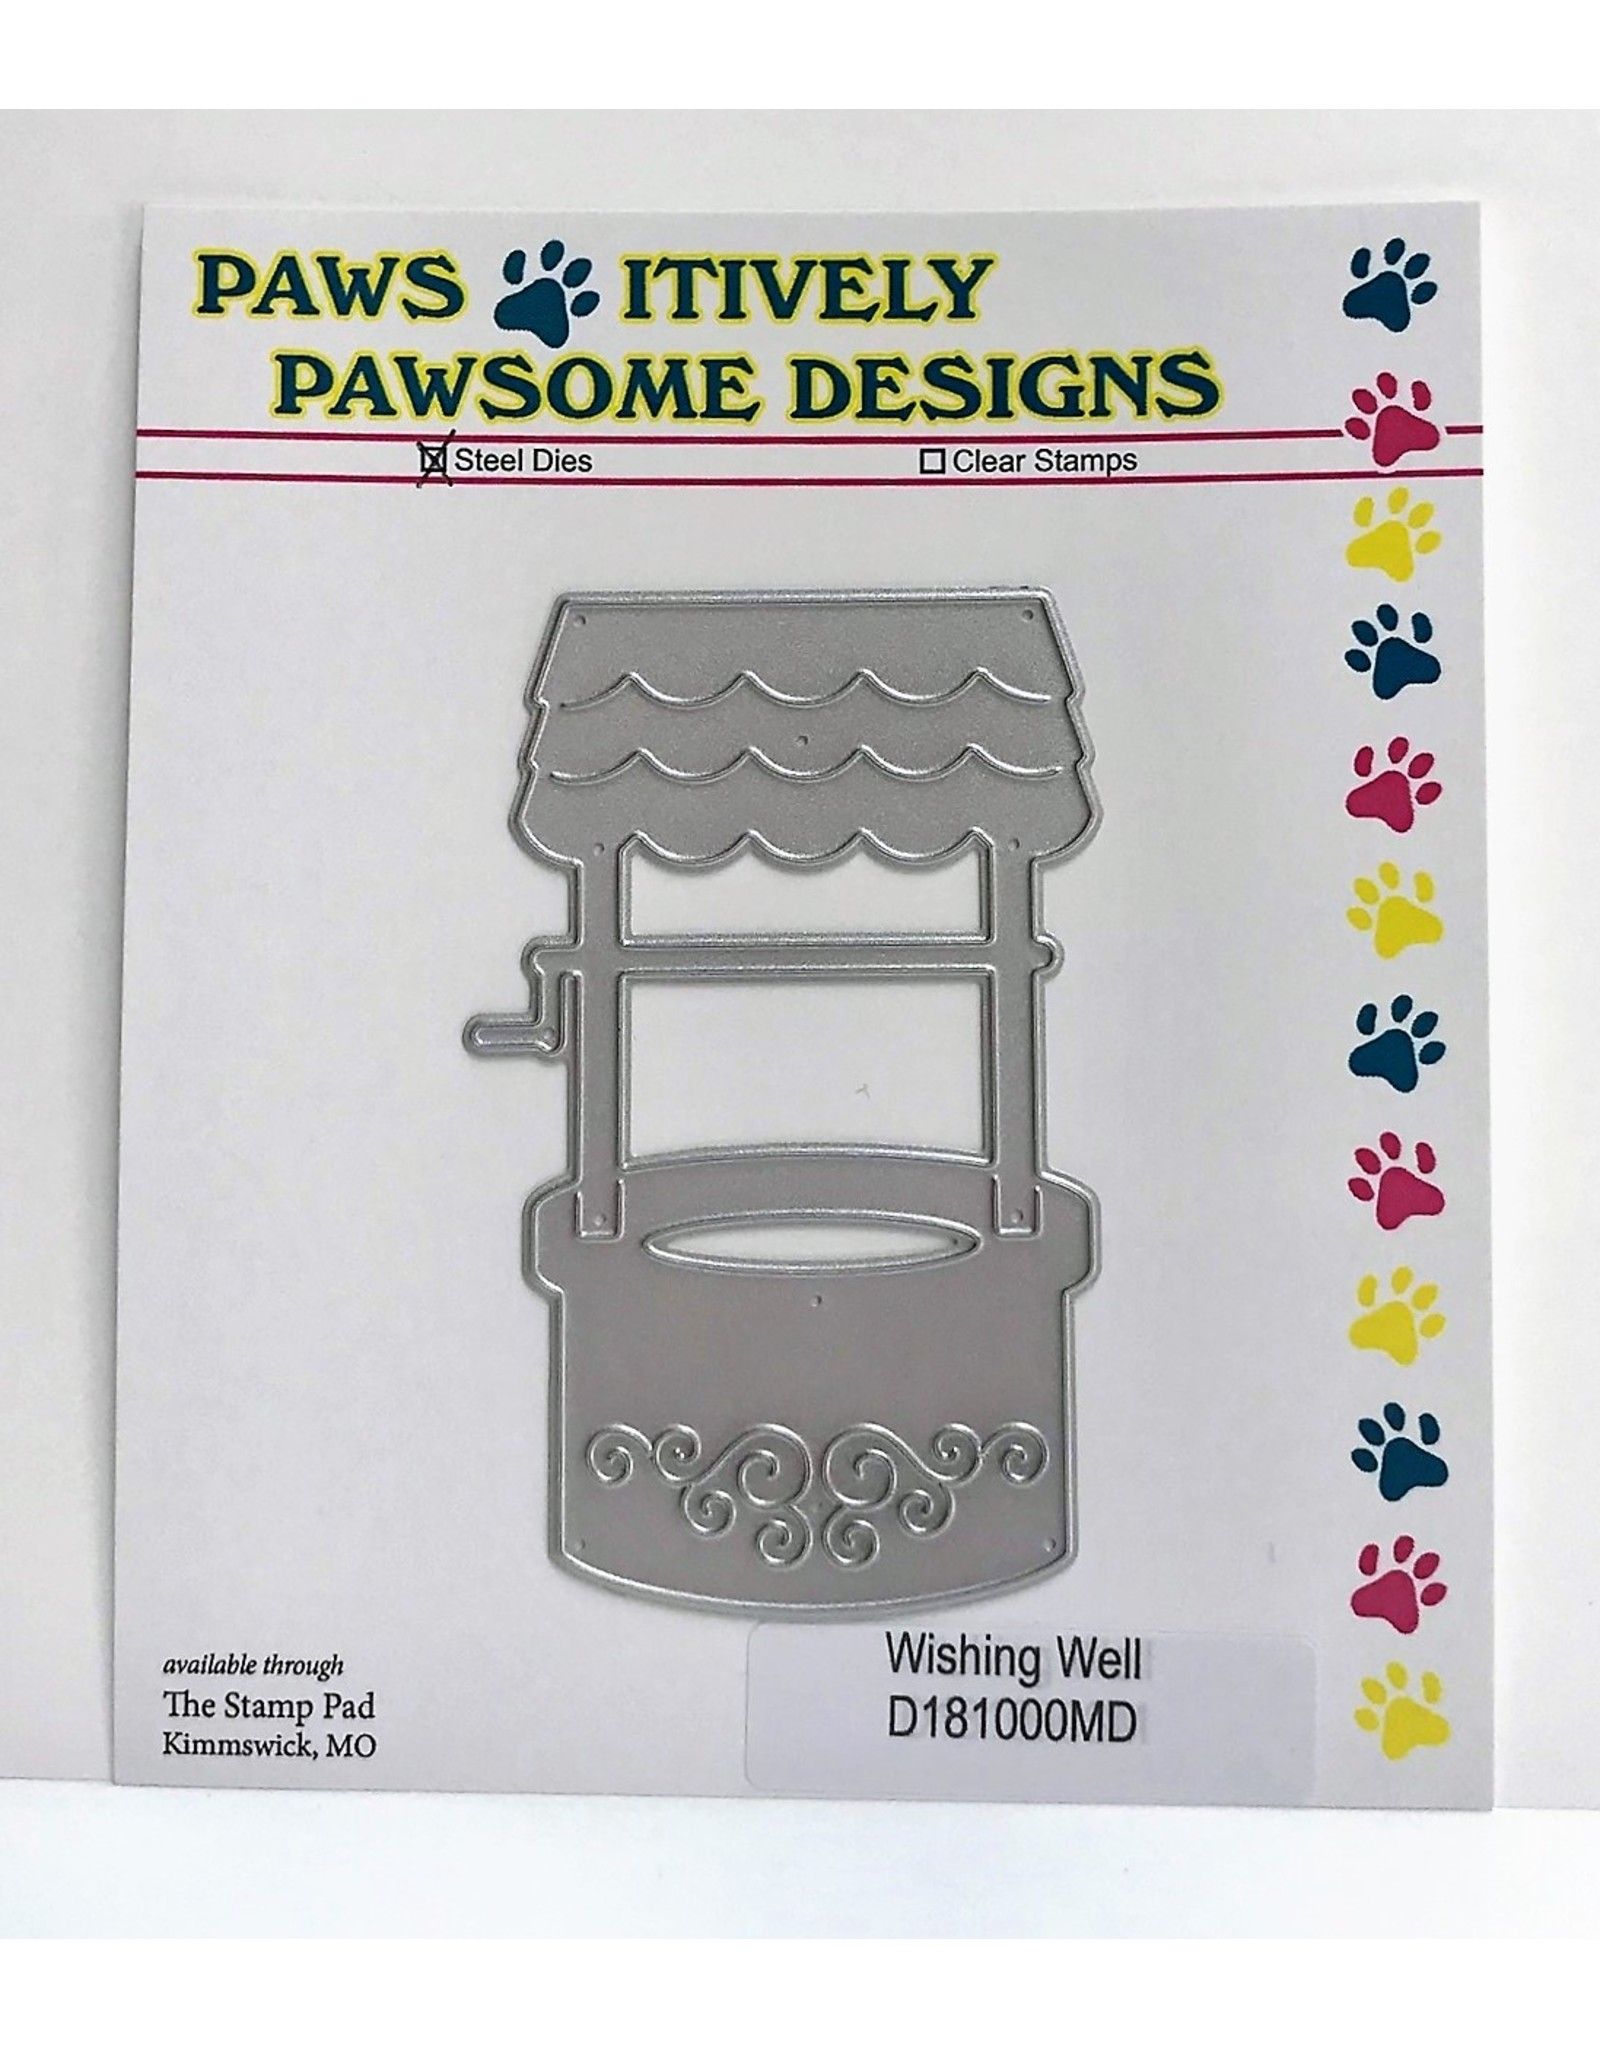 Paws-Itively Pawsome Designs Wishing Well - Die